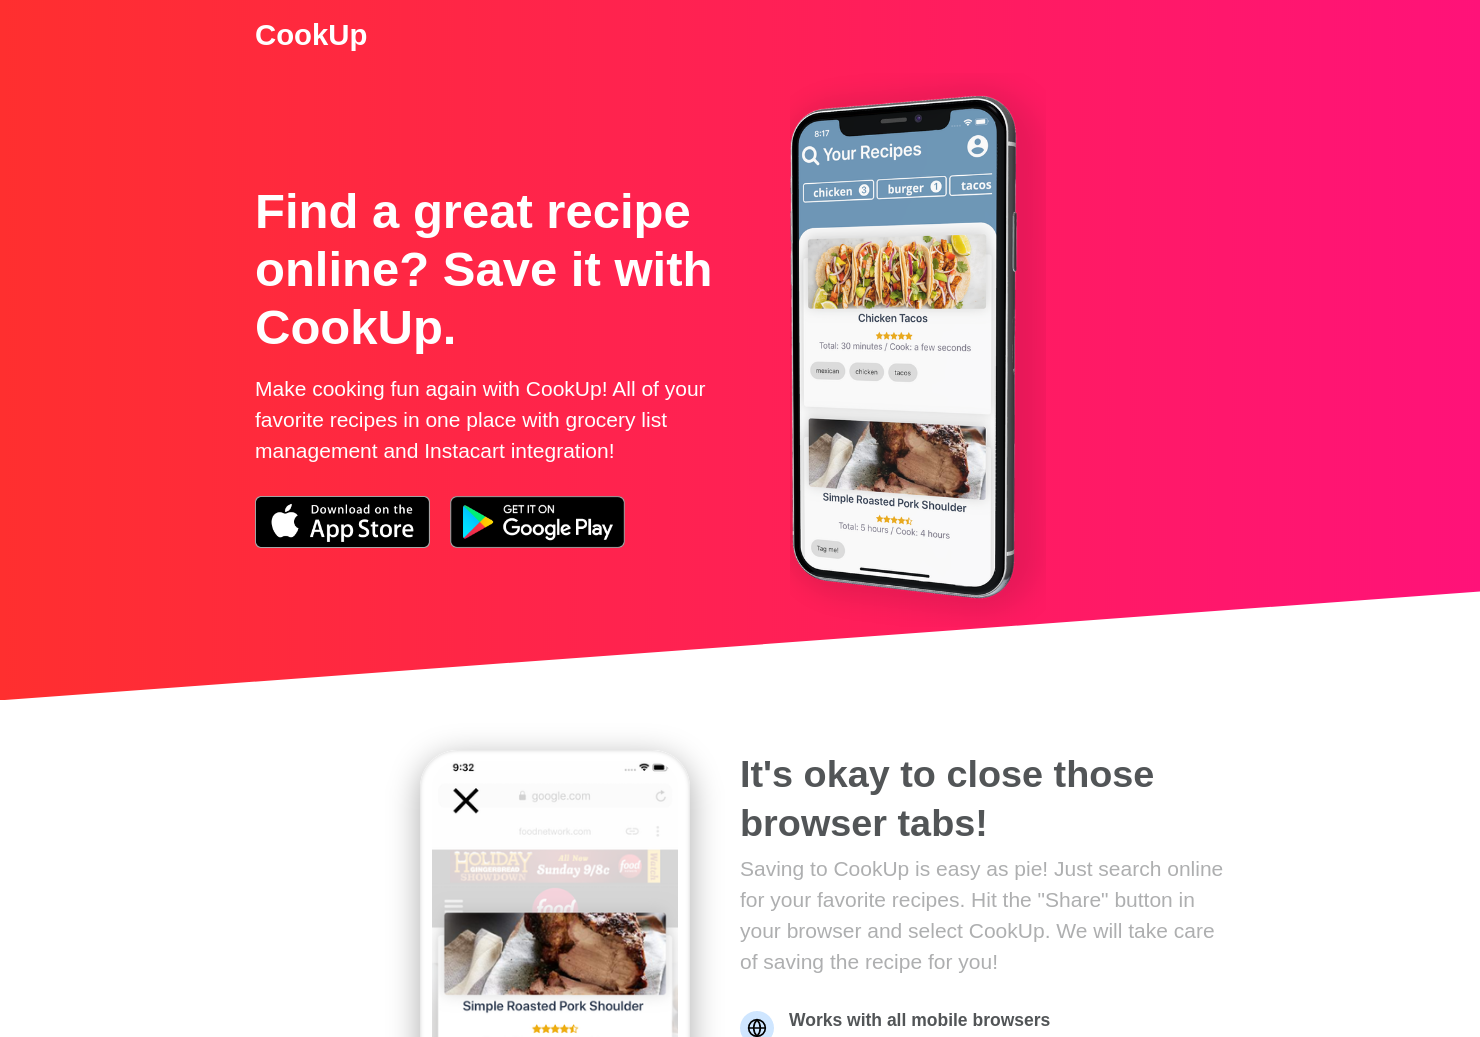 ?max width=300&url=https%3a%2f%2ftrycookup